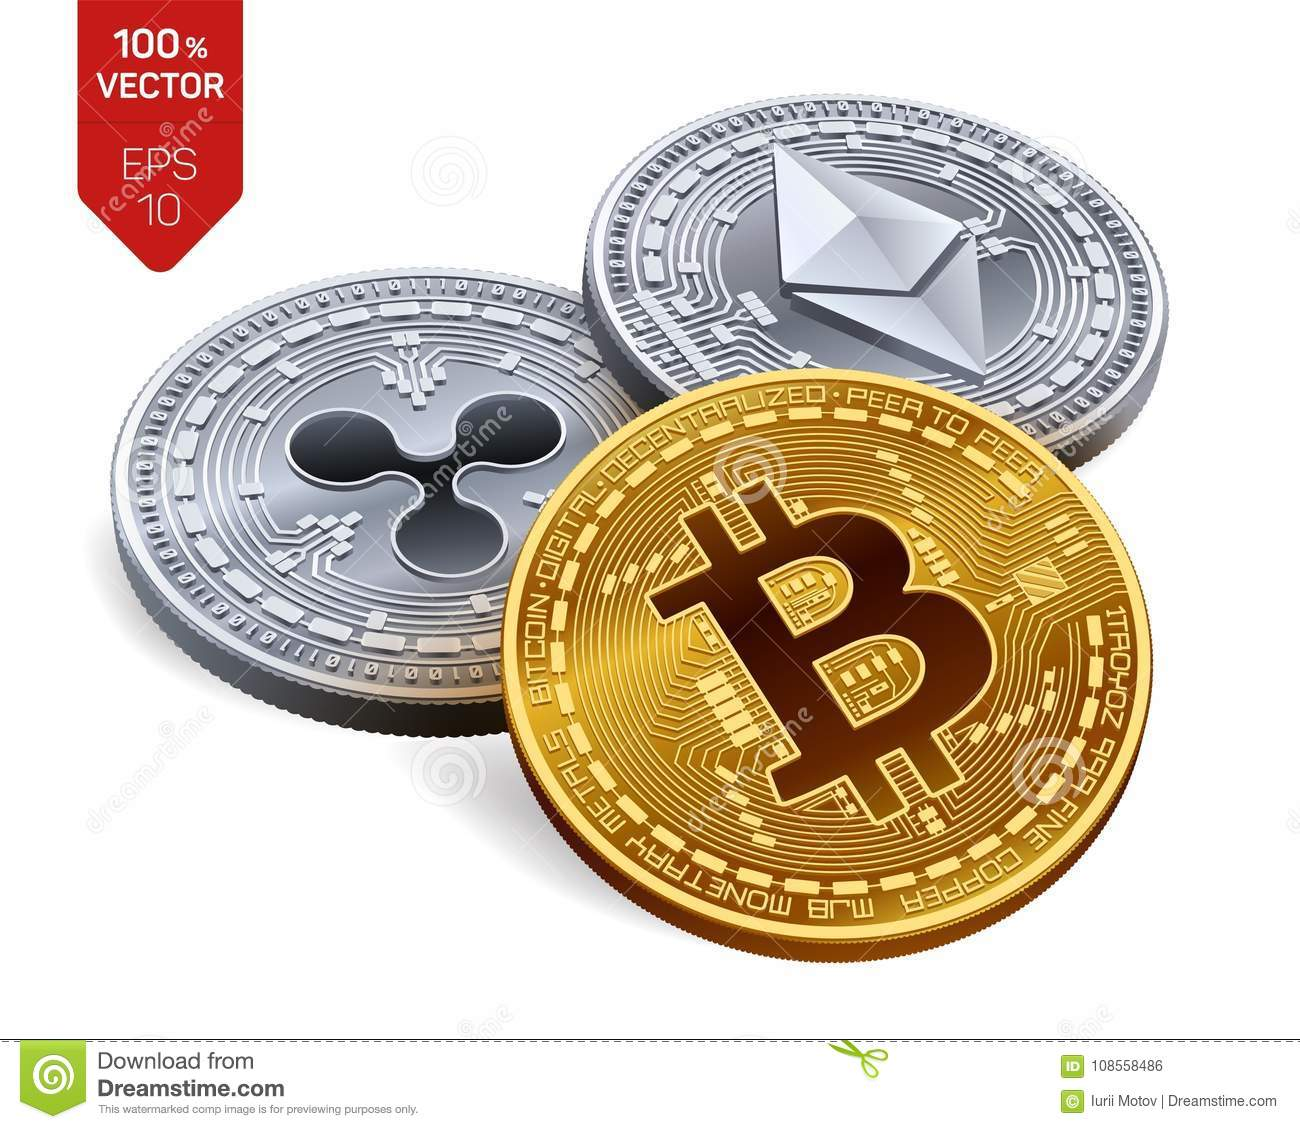 Bitcoin Ripple Ethereum 3D Isometric Physical Coins Digital Currency Crypto Silver And Golden With Symbol